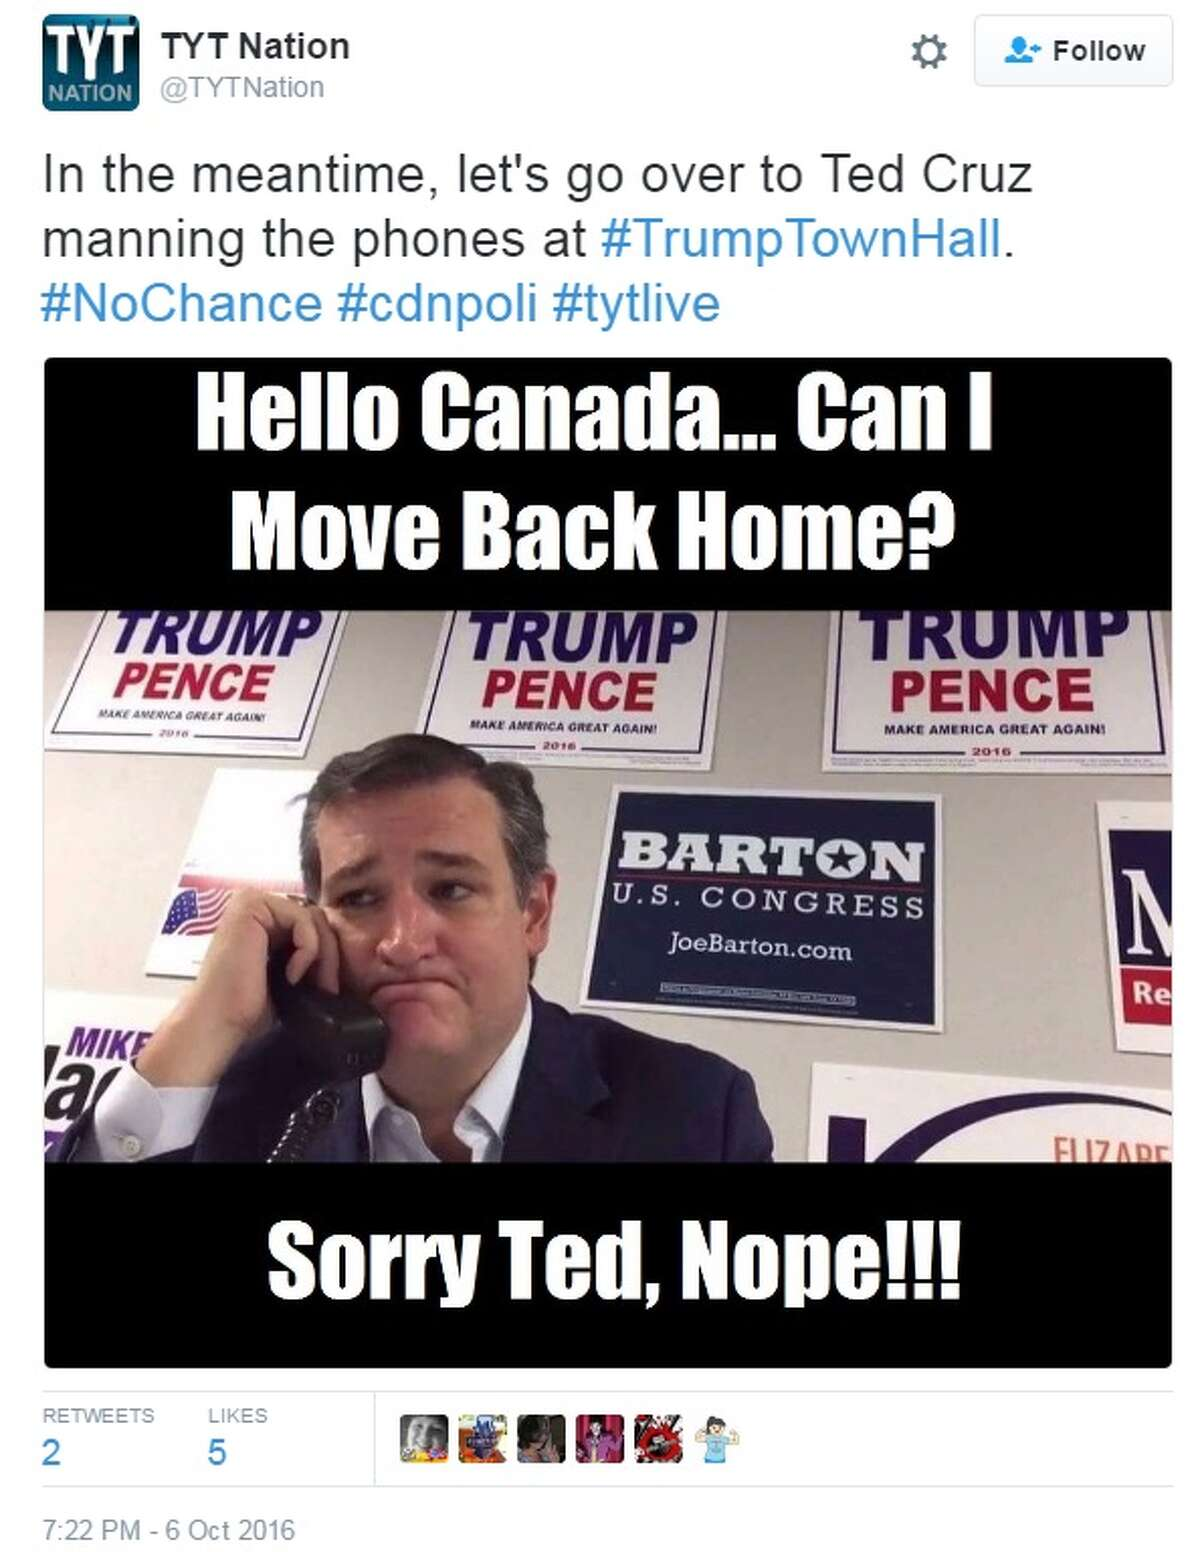 Texas Sen. Ted Cruz was ridiculed on social media on Oct. 6, 2016, after videos of him calling voters to cast their ballot for Trump was posted online. Image via Twitter